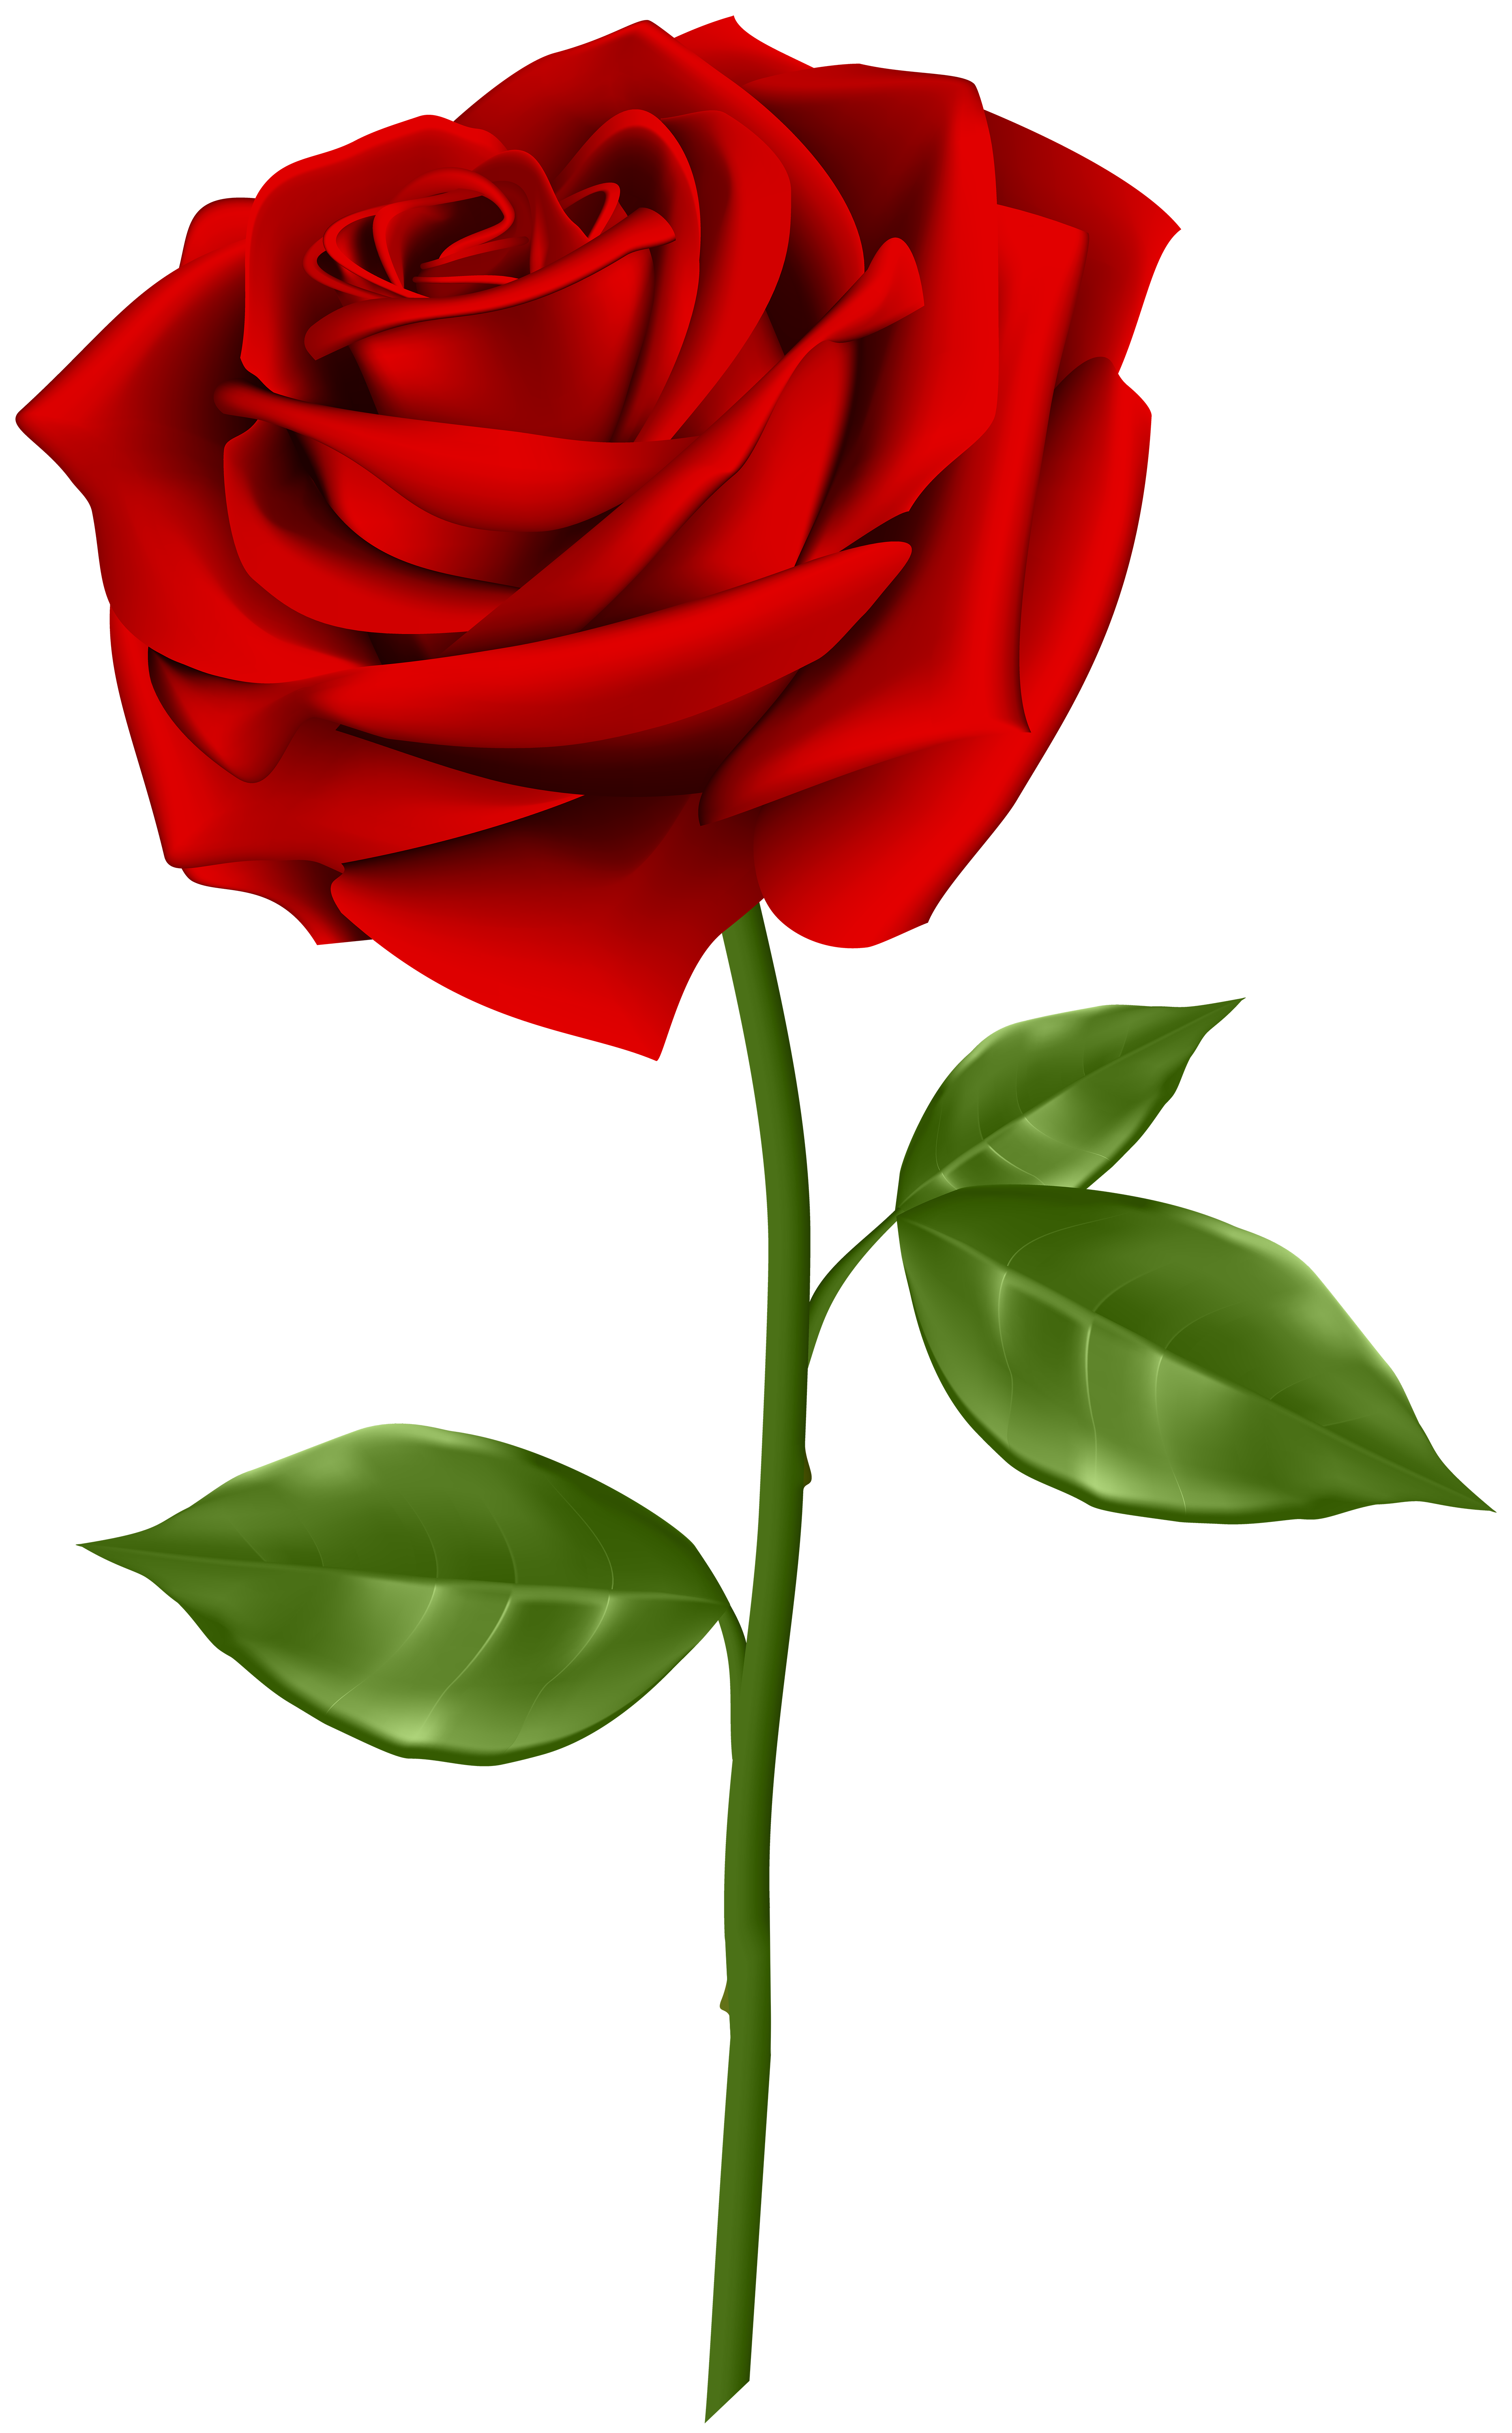 Red rose png. Transparent clip art gallery